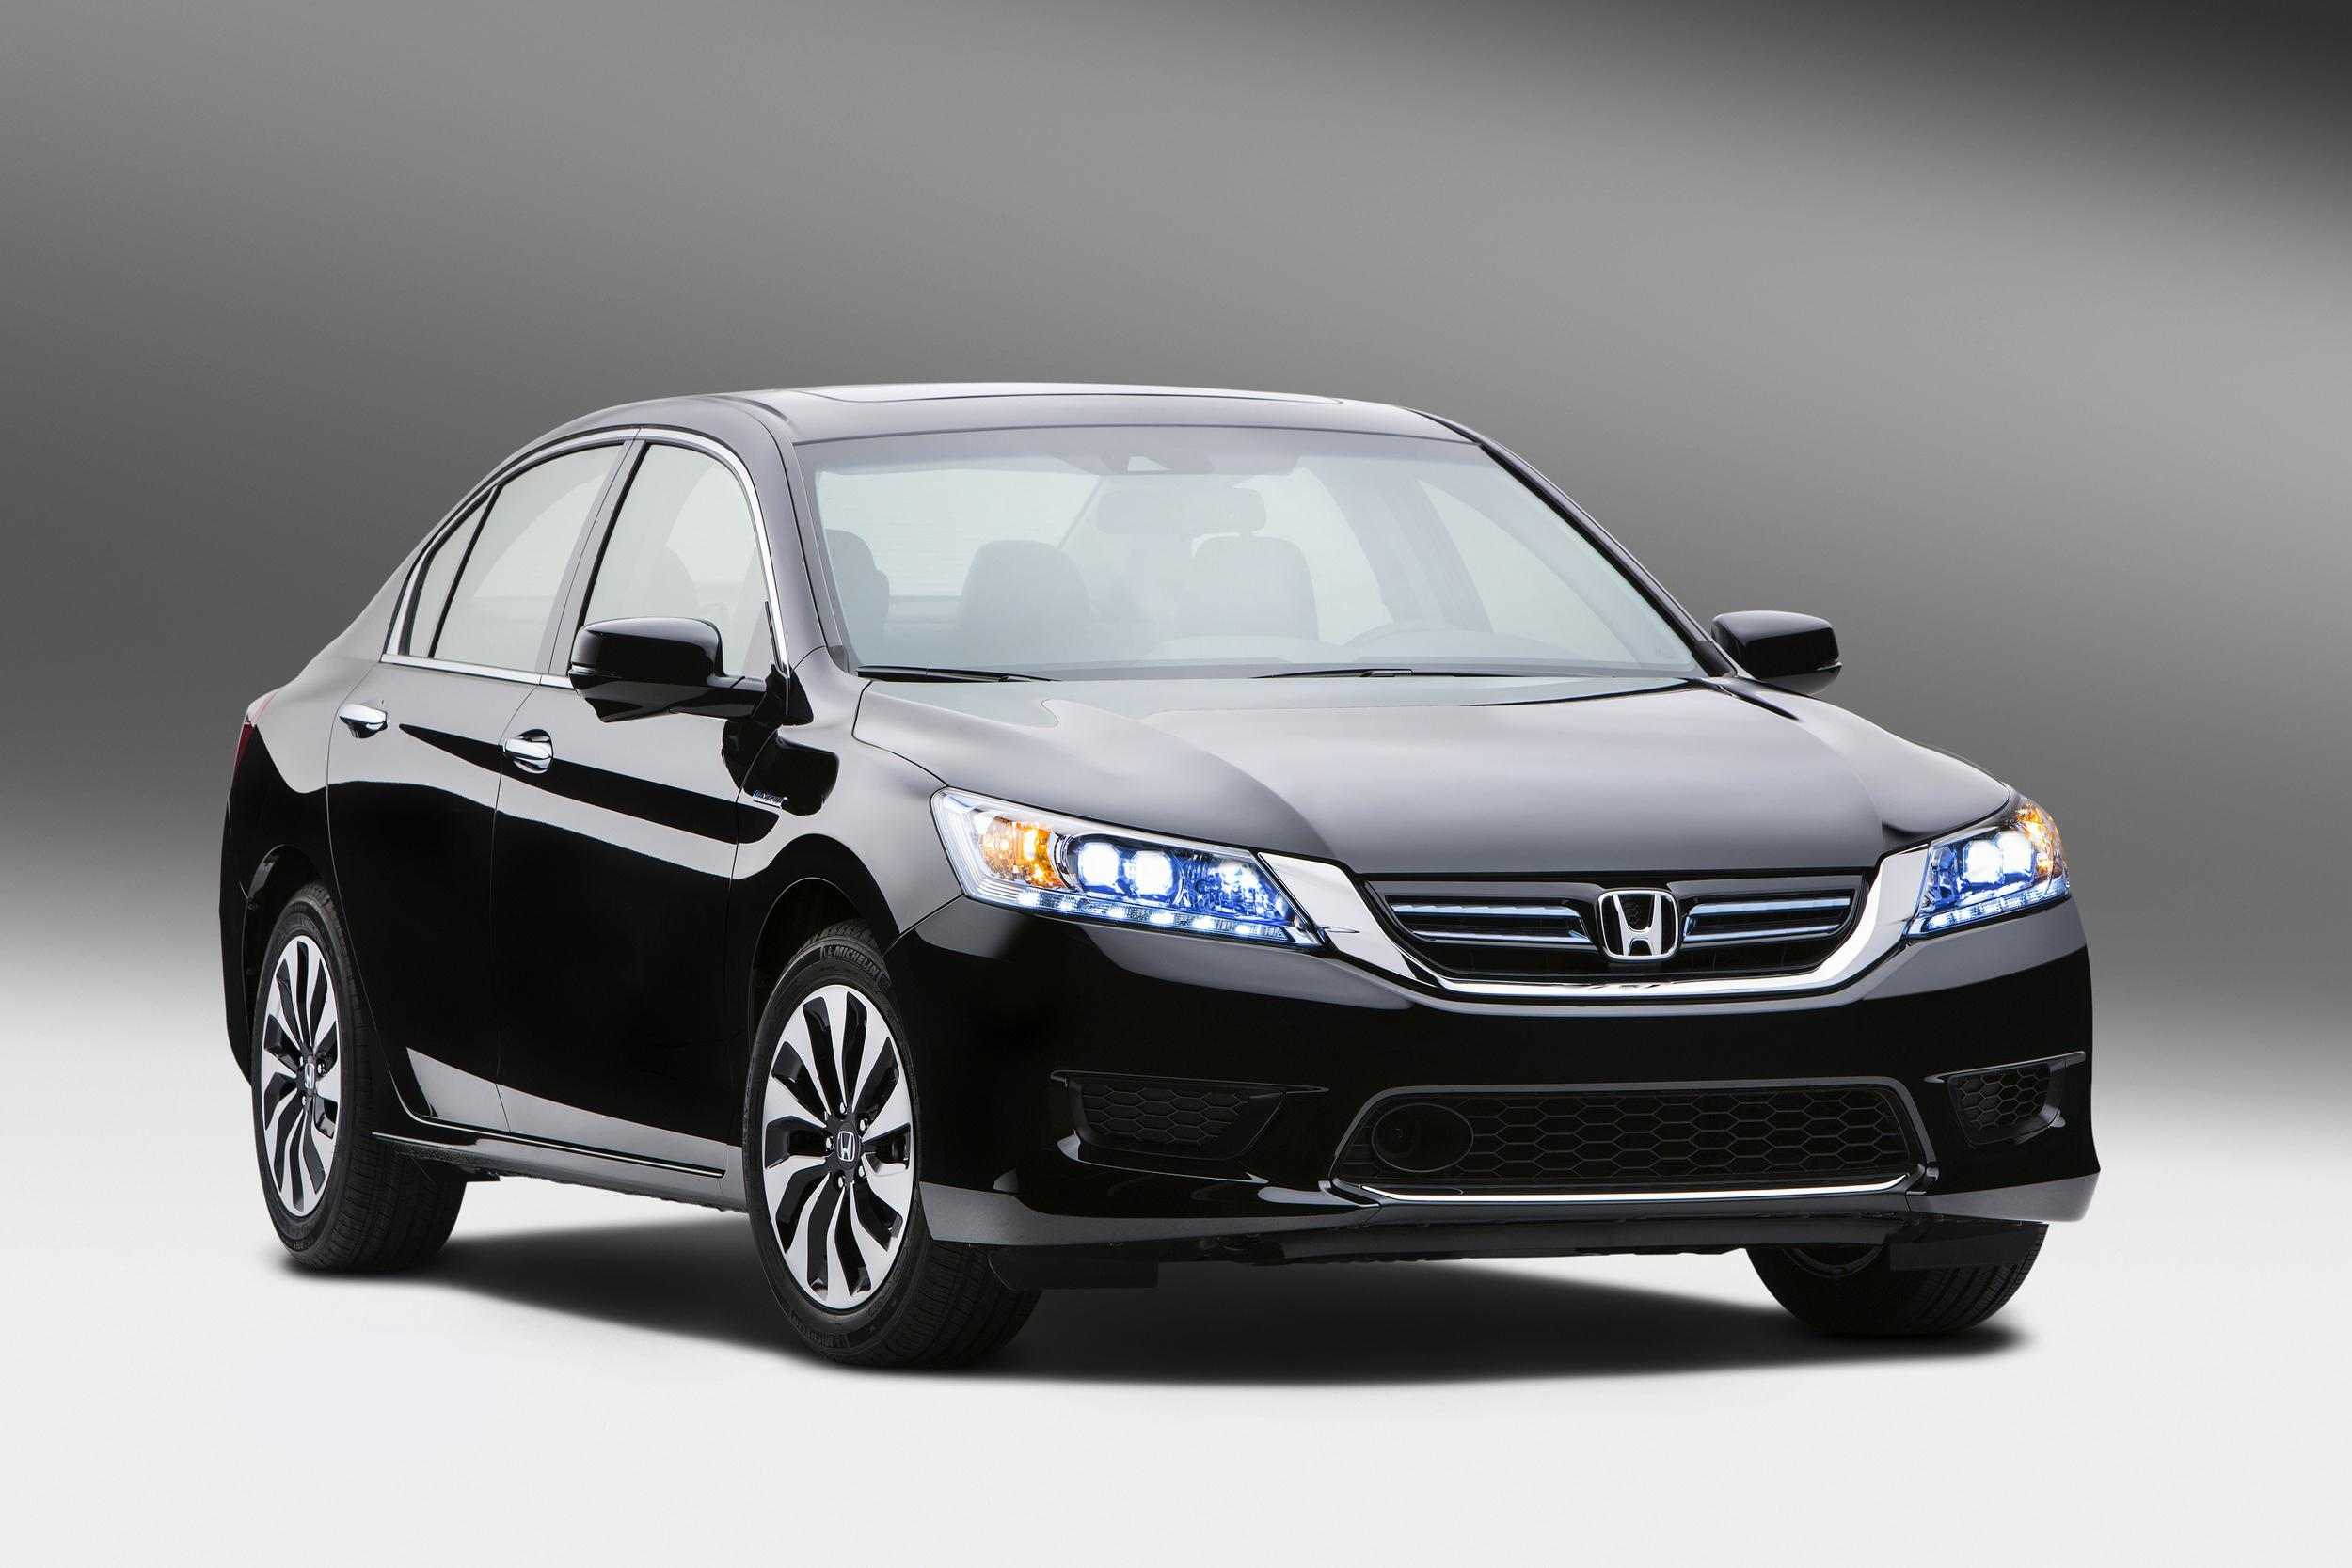 Honda Accord Hybrid #29